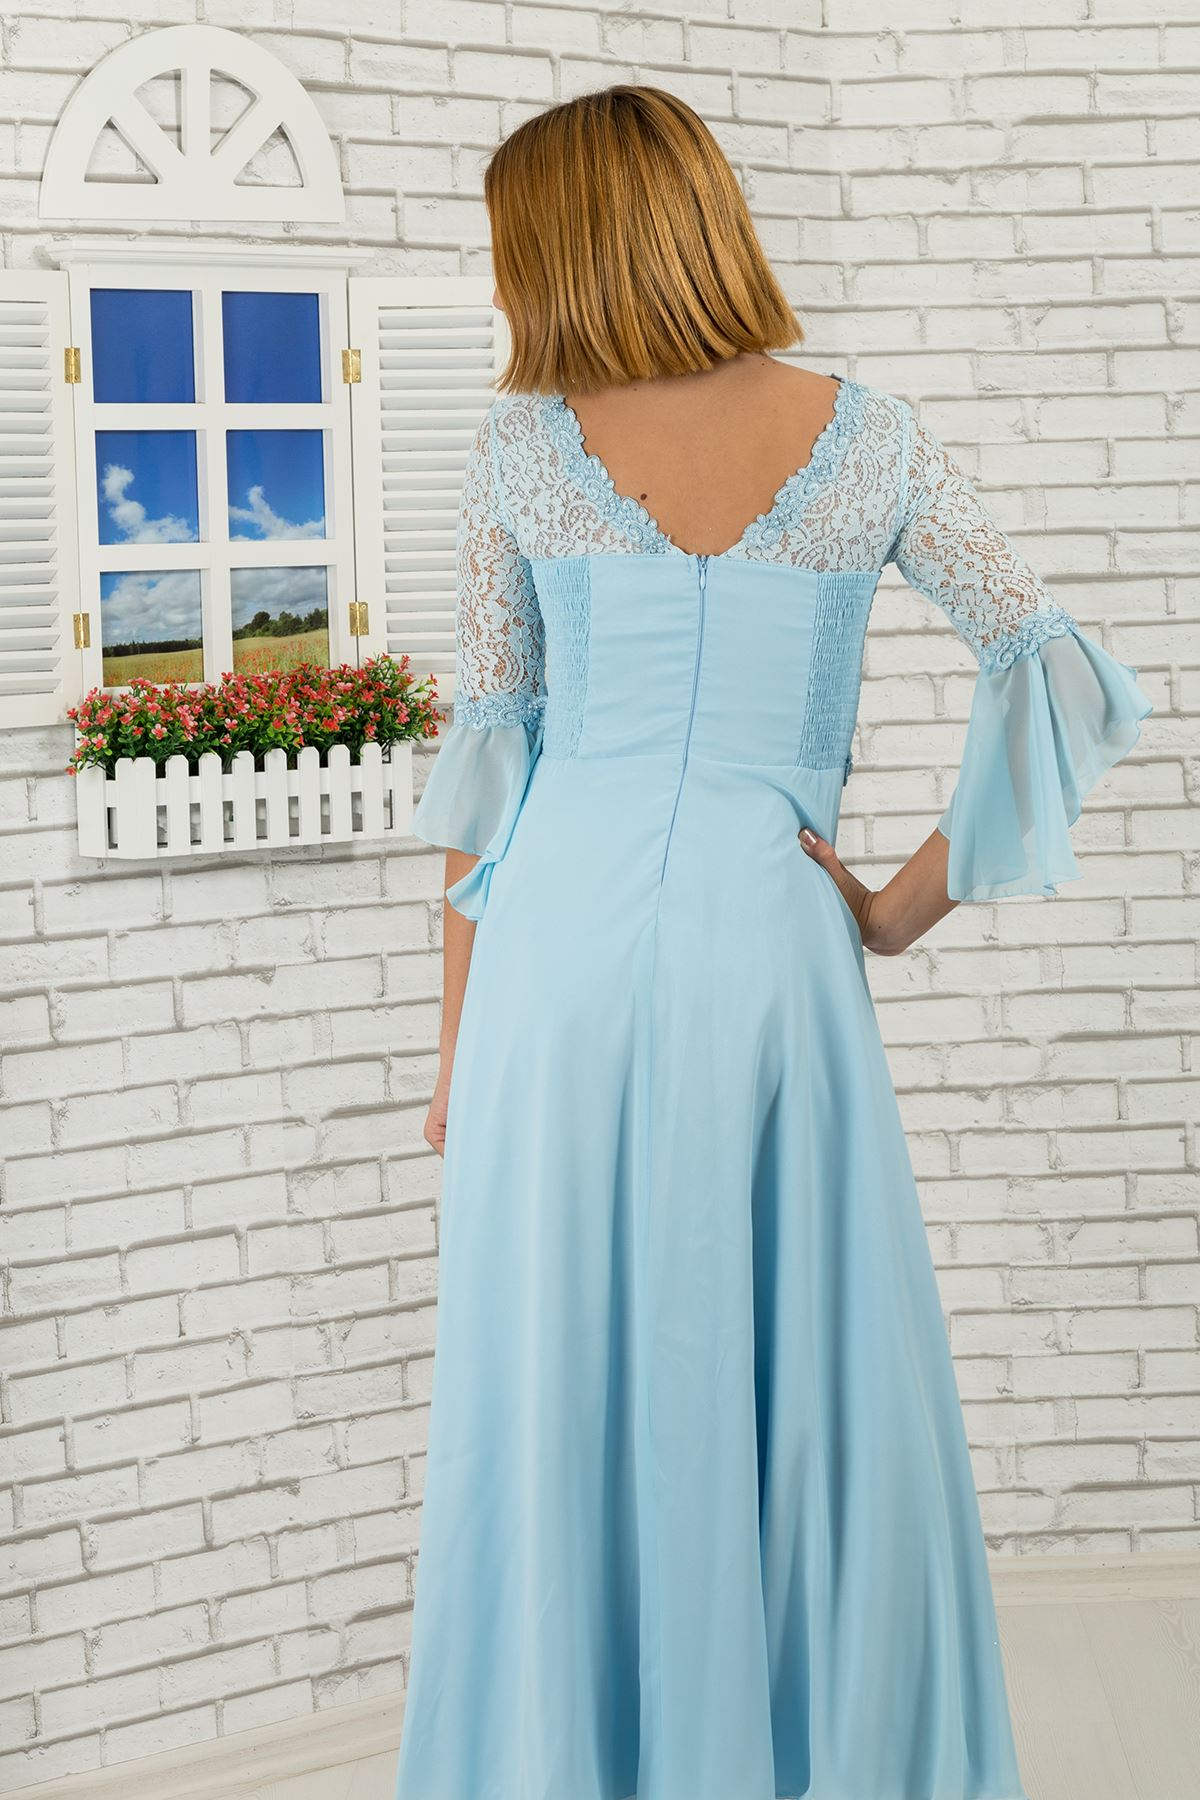 Girl's Evening Dress with lace body and sleeves, flower detail on waist 463 Baby Blue